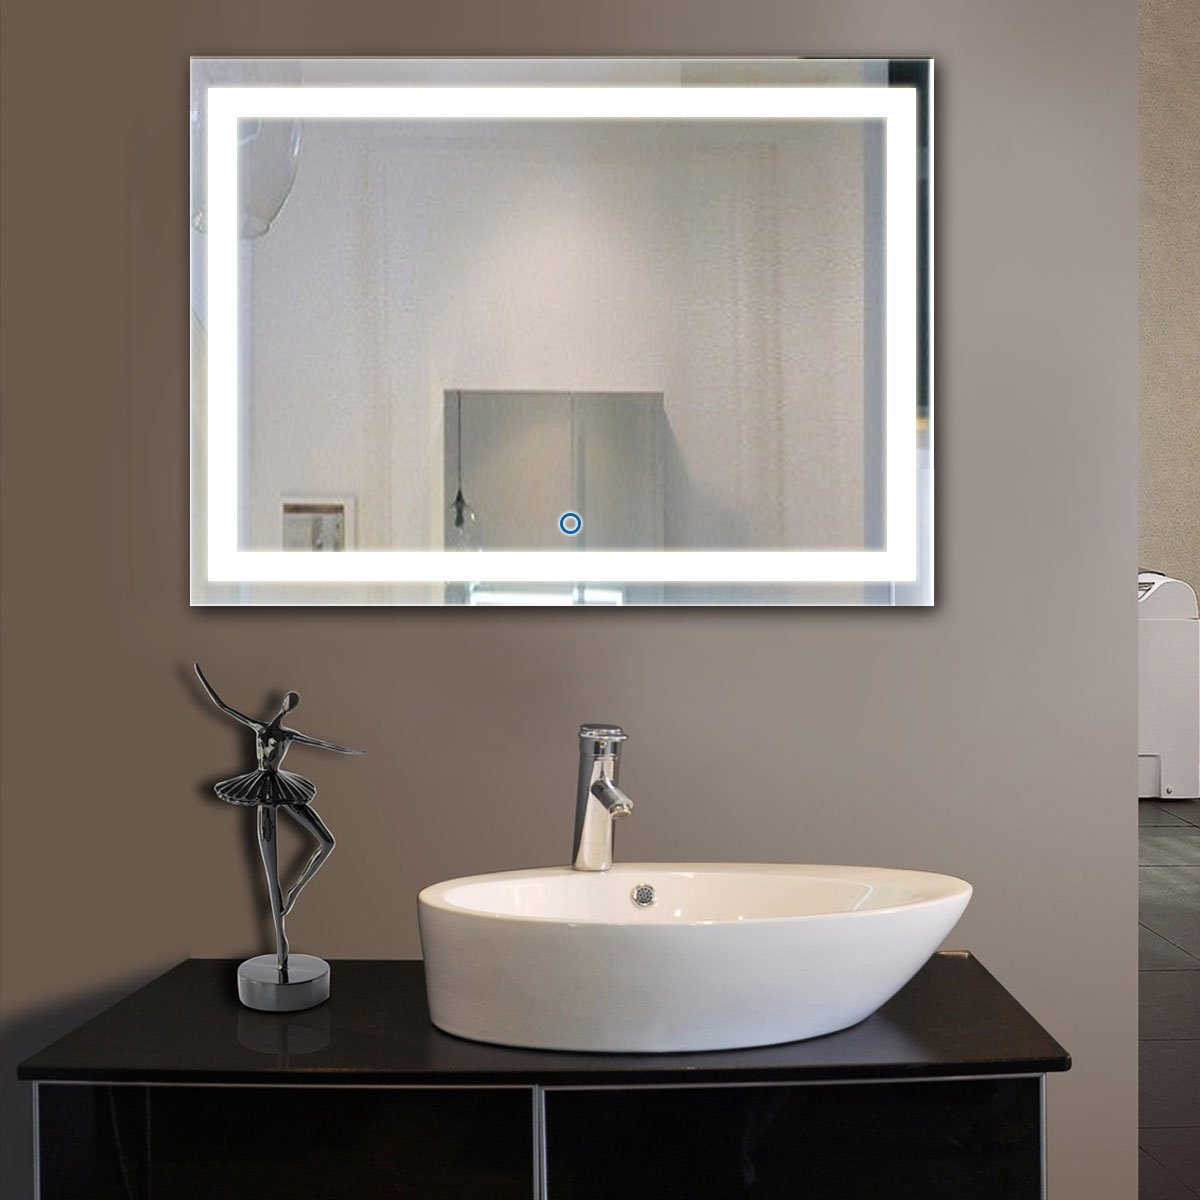 DECORAPORT 48 Inch * 36 Inch Horizontal LED Wall Mounted Lighted Vanity Bathroom Silvered Mirror with Touch Button (A-CK010-D)